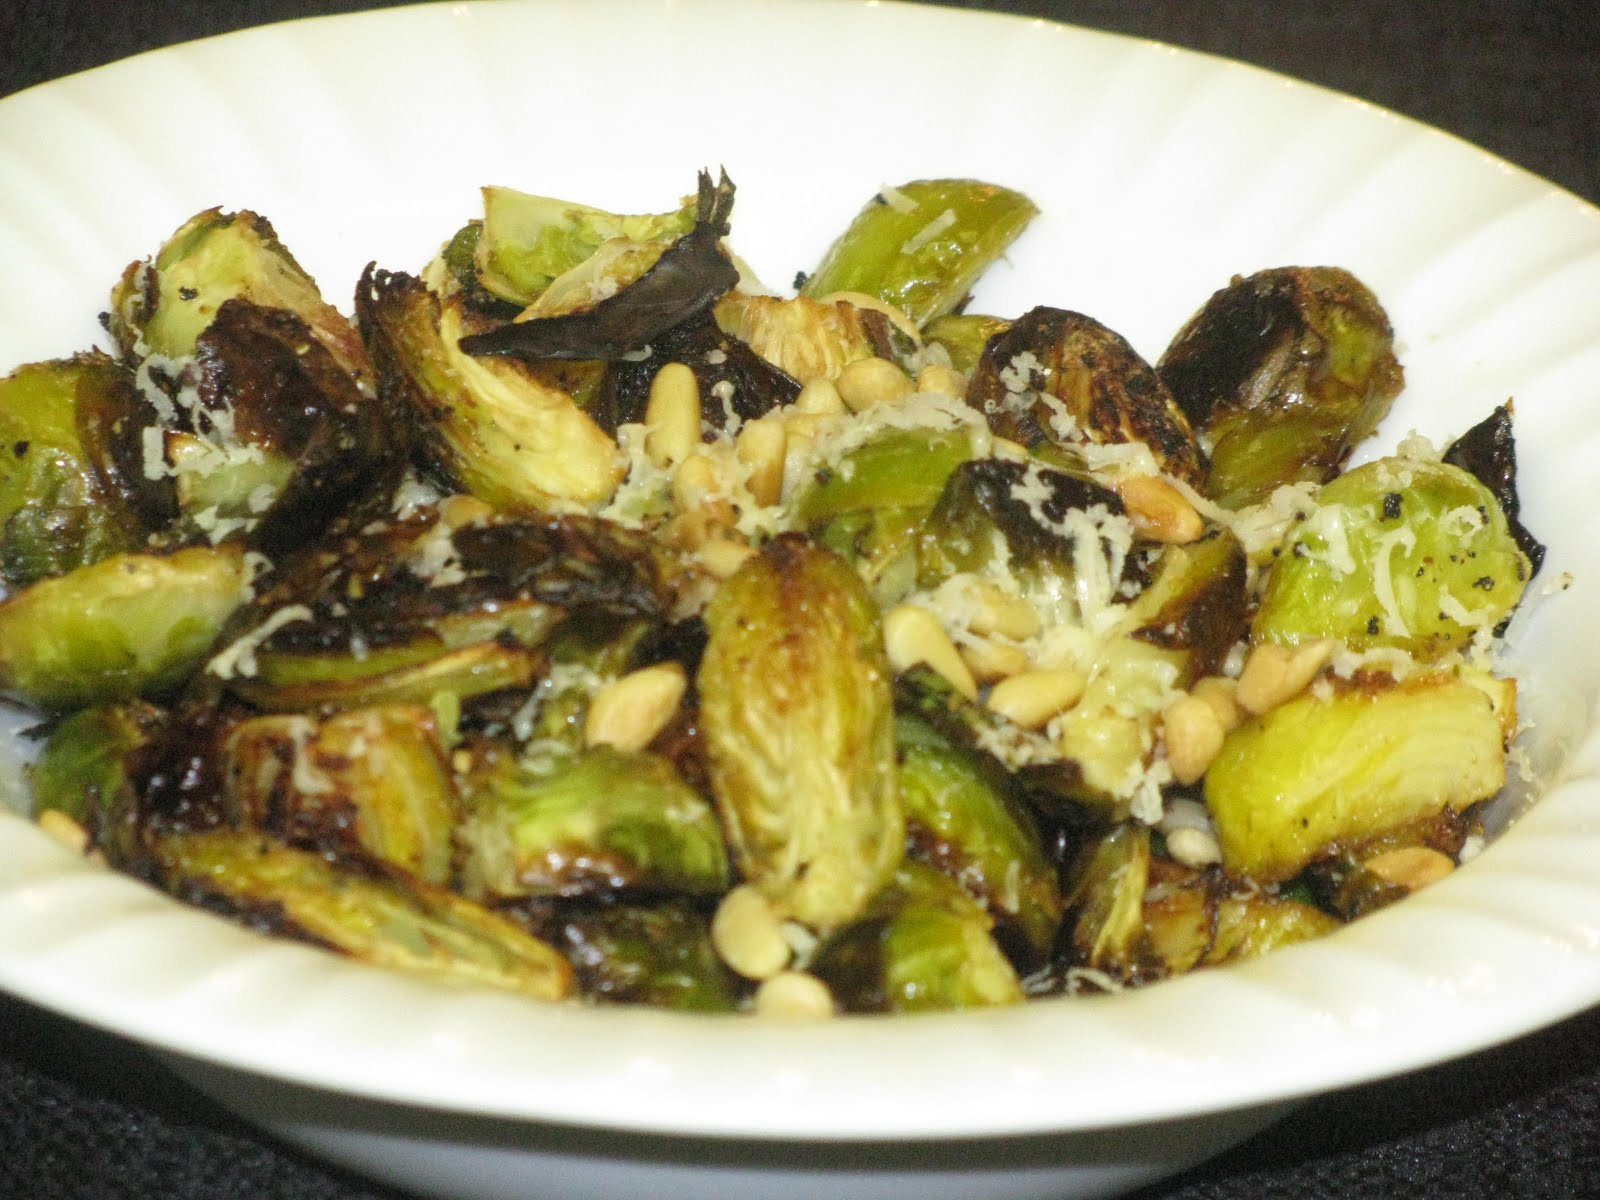 ... : Lemon Garlic Roasted Brussel Sprouts with Pine Nuts & Parmesan